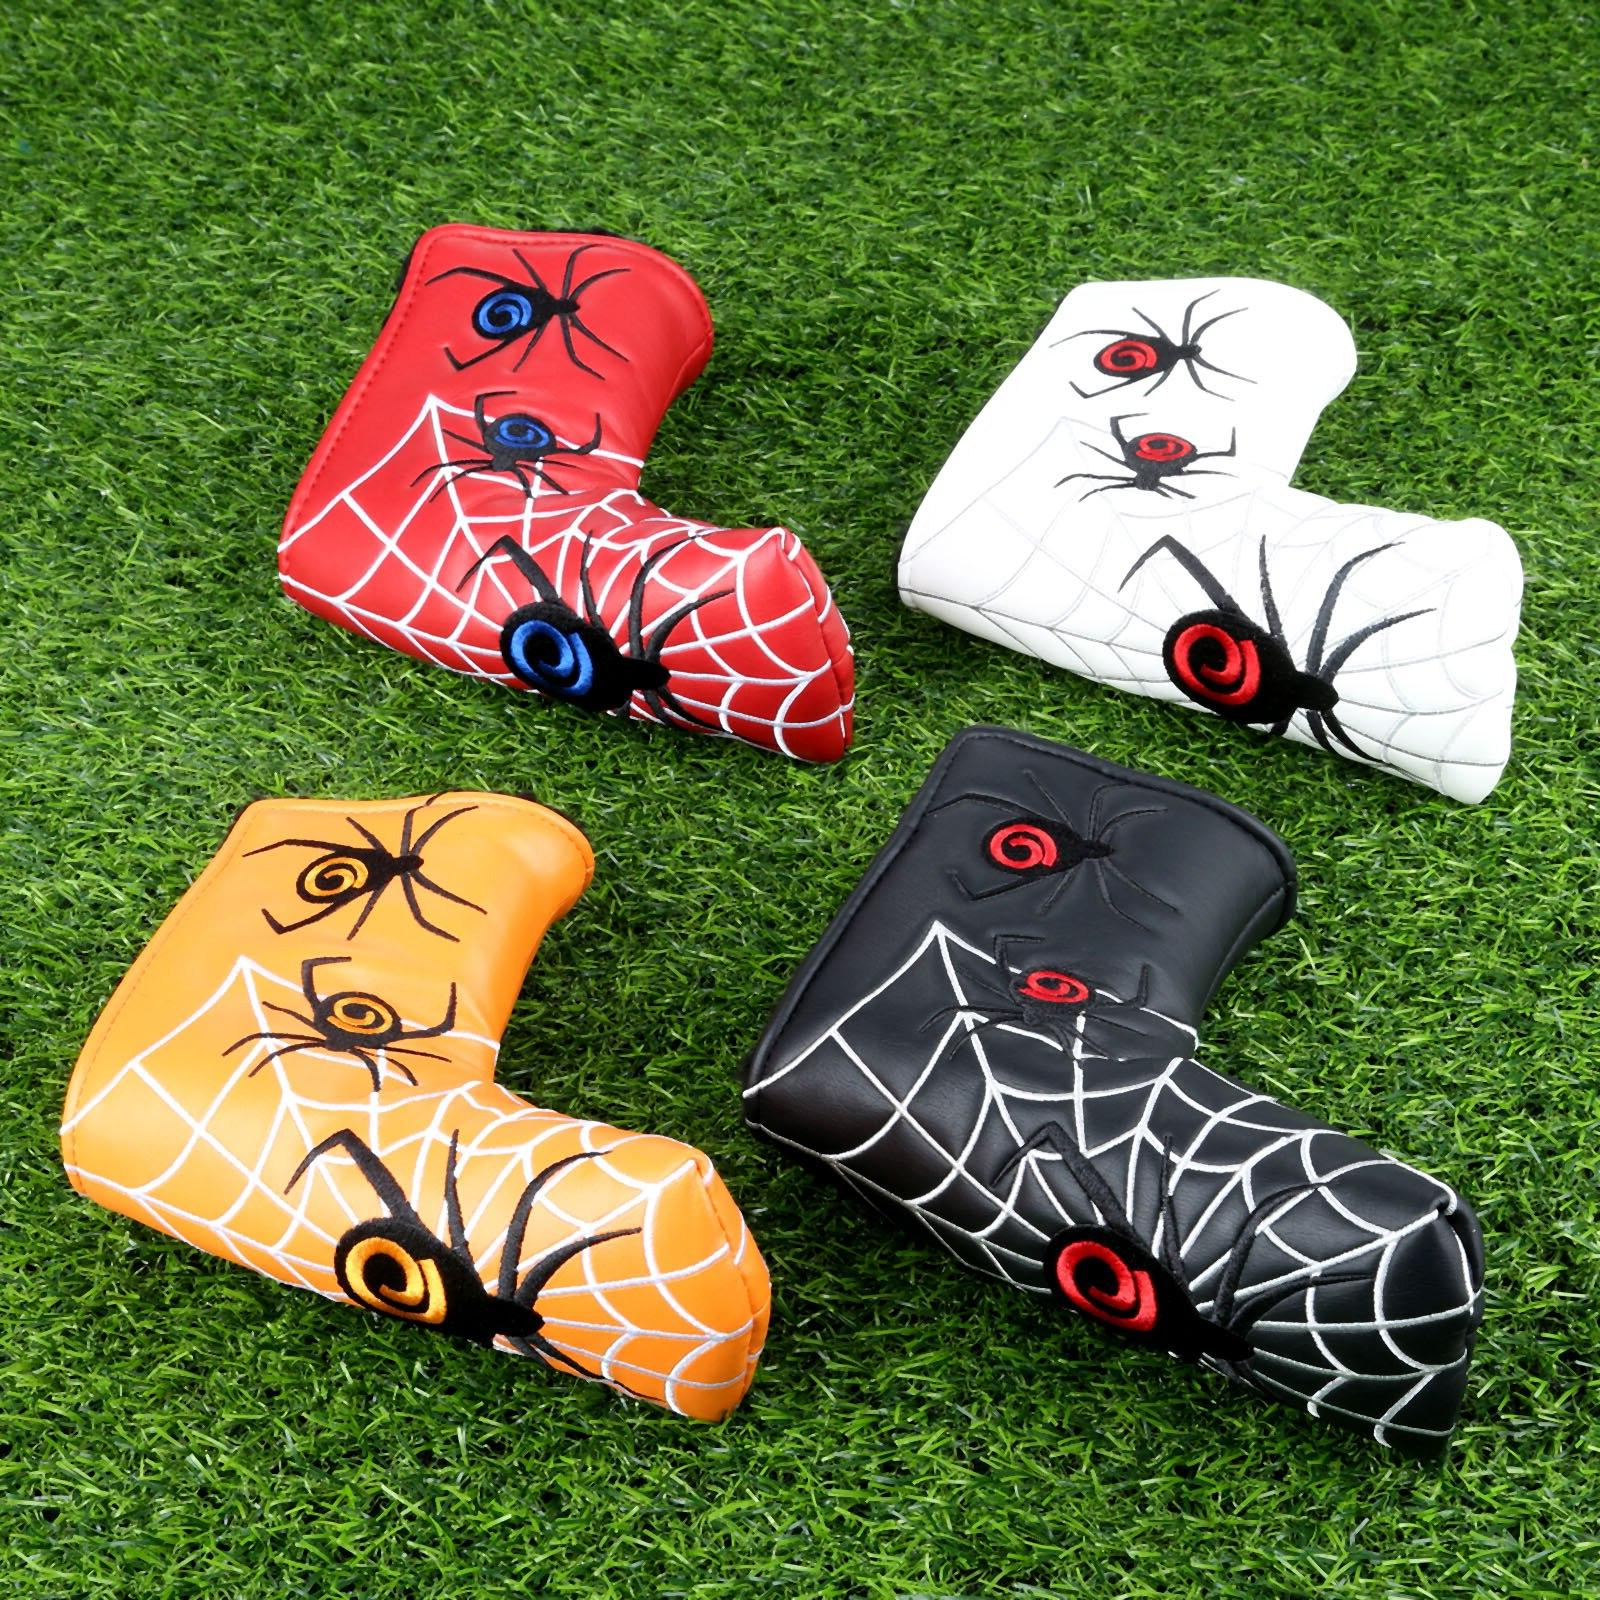 Spider Golf Blade <font><b>Headcover</b></font> PU Leather Head Covers Scotty <font><b>Odyssey</b></font>